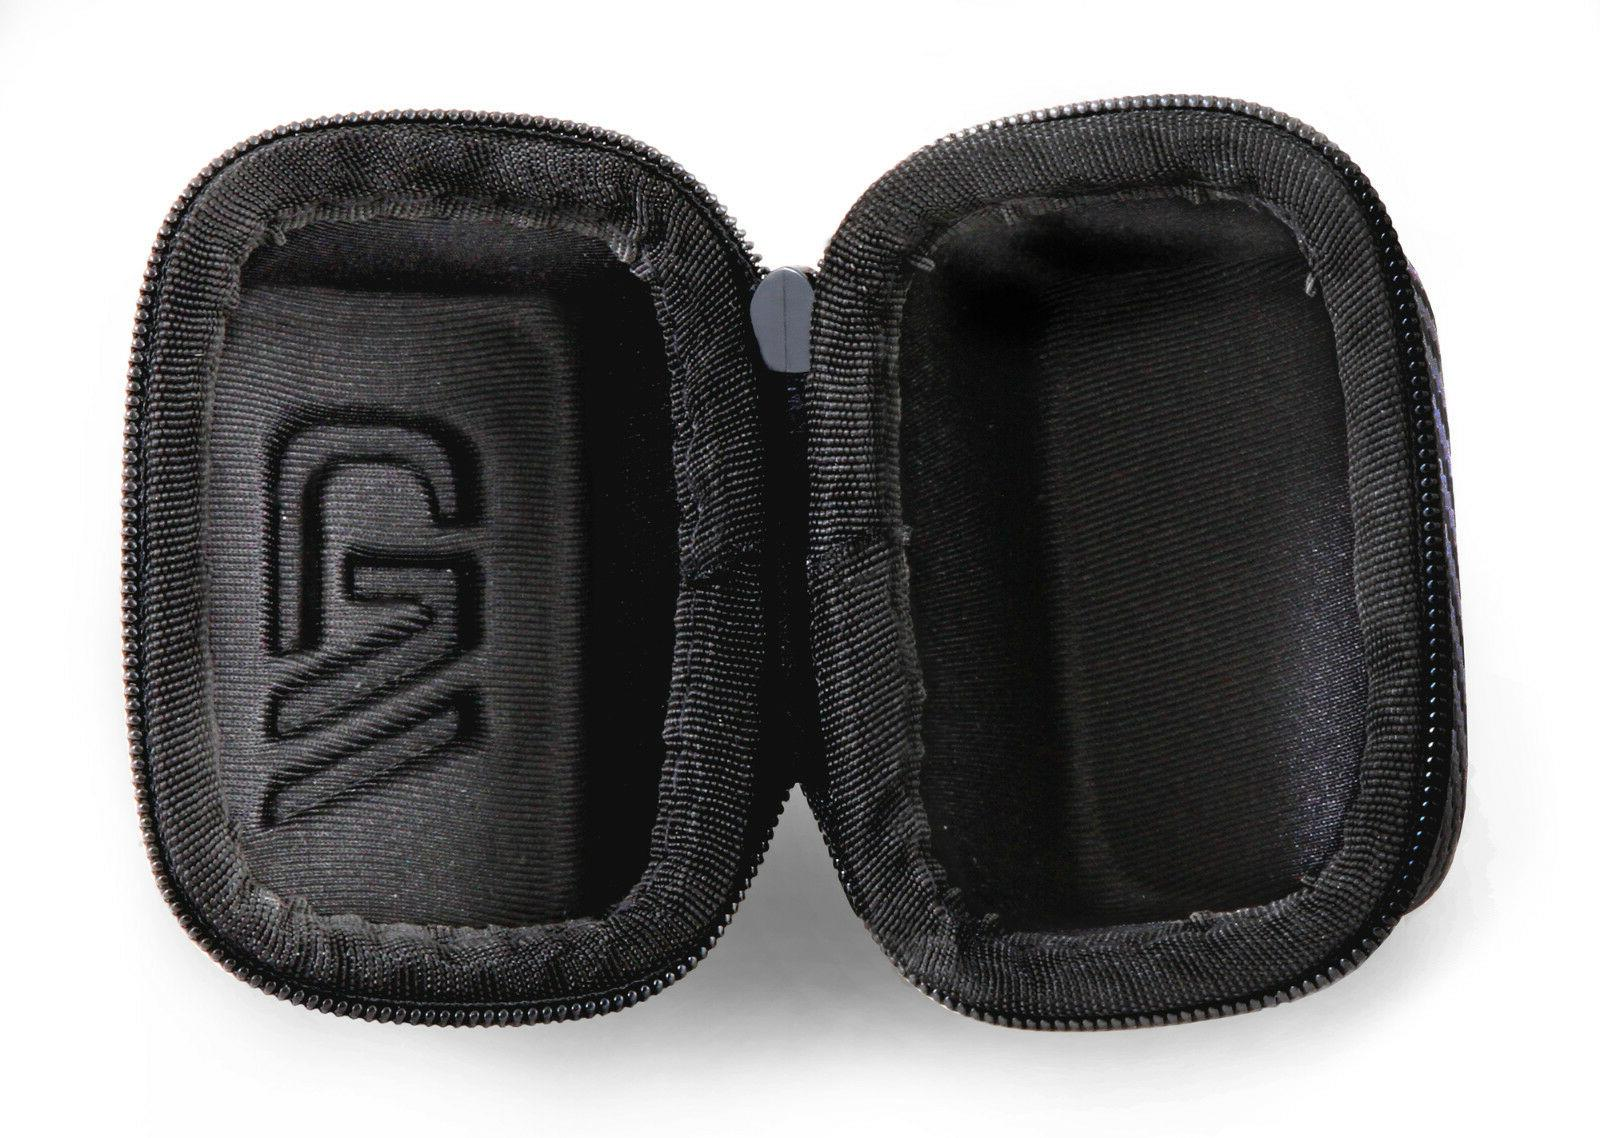 Carry Case Fits Cell Phone by AMIR AUKEY Olloclip and